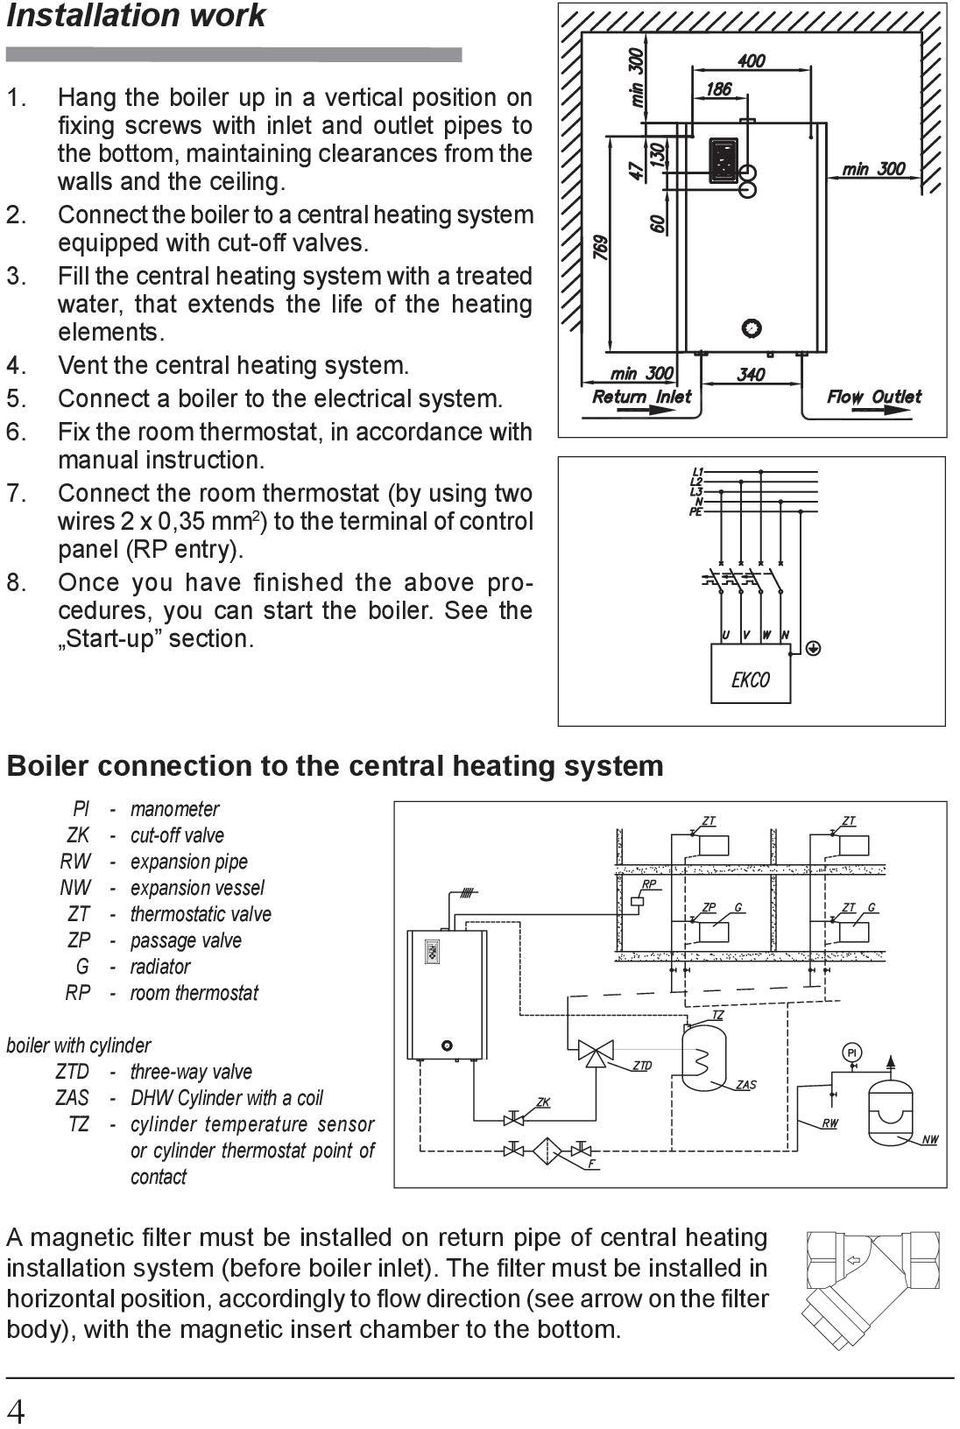 Vent the central heating system. 5. Connect a boiler to the electrical system. 6. Fix the room thermostat, in accordance with manual instruction. 7.